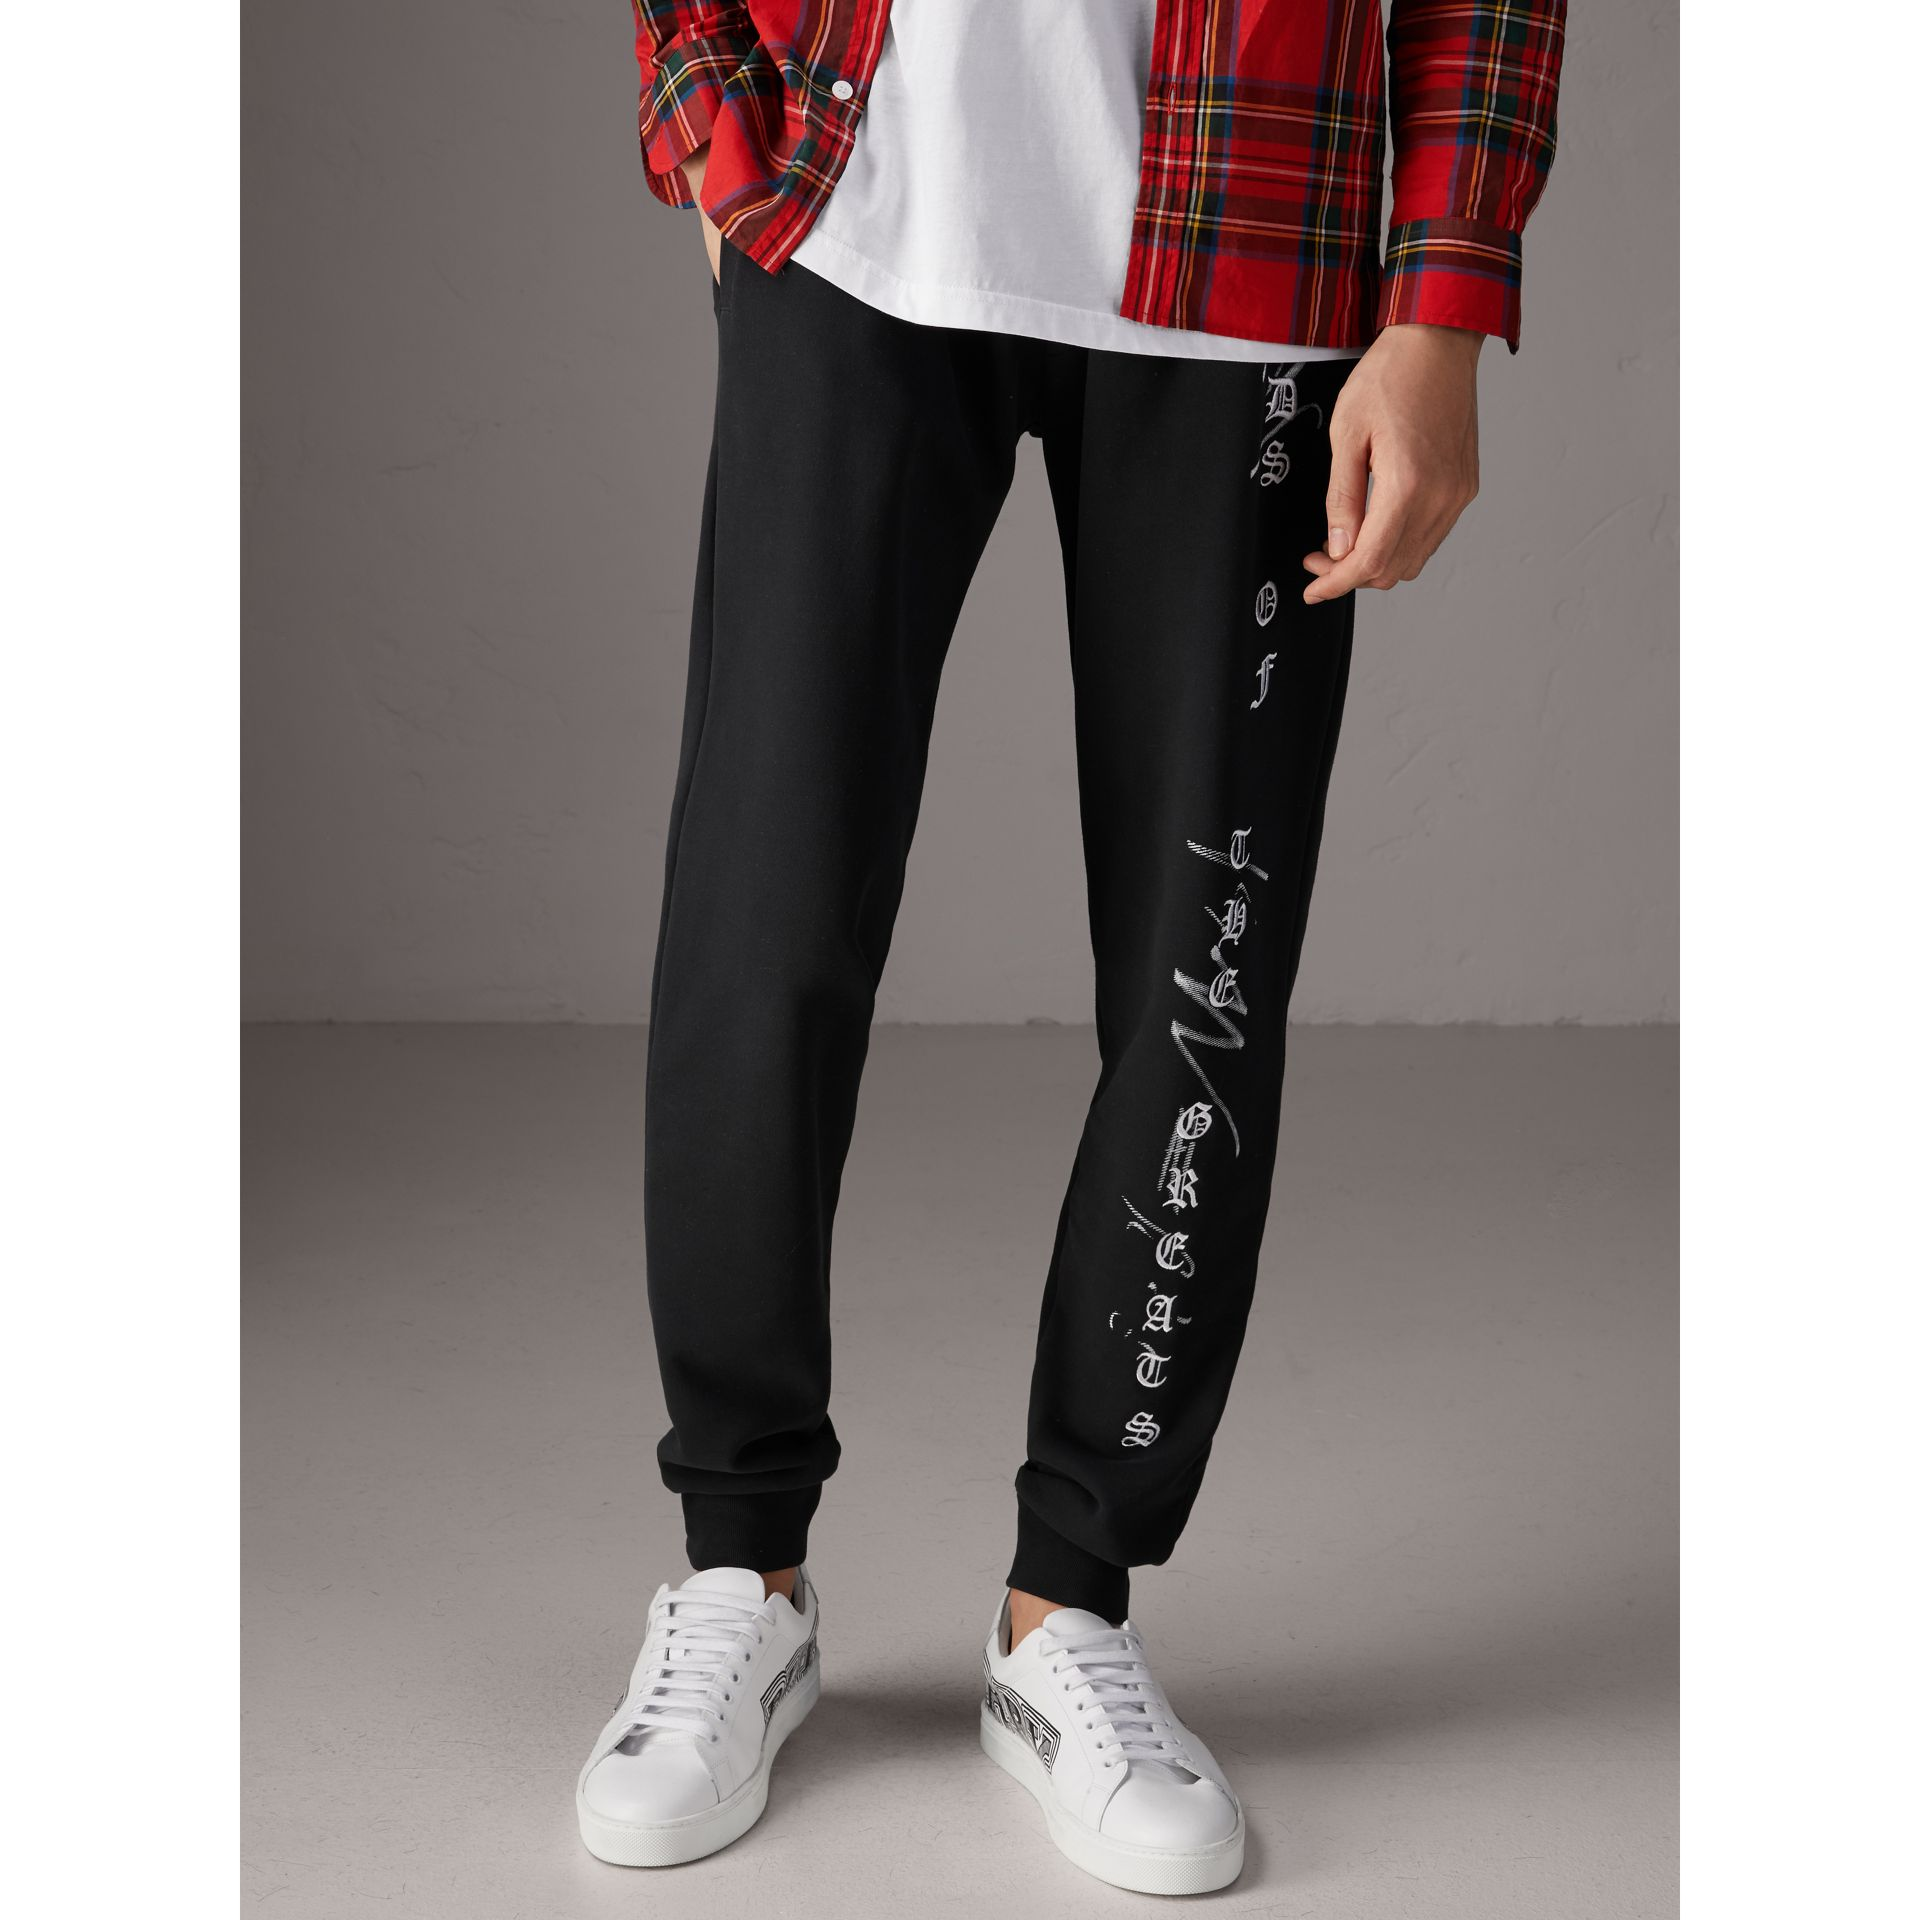 Burberry x Kris Wu Graphic Motif Sweatpants in Black - Men | Burberry Hong Kong - gallery image 4